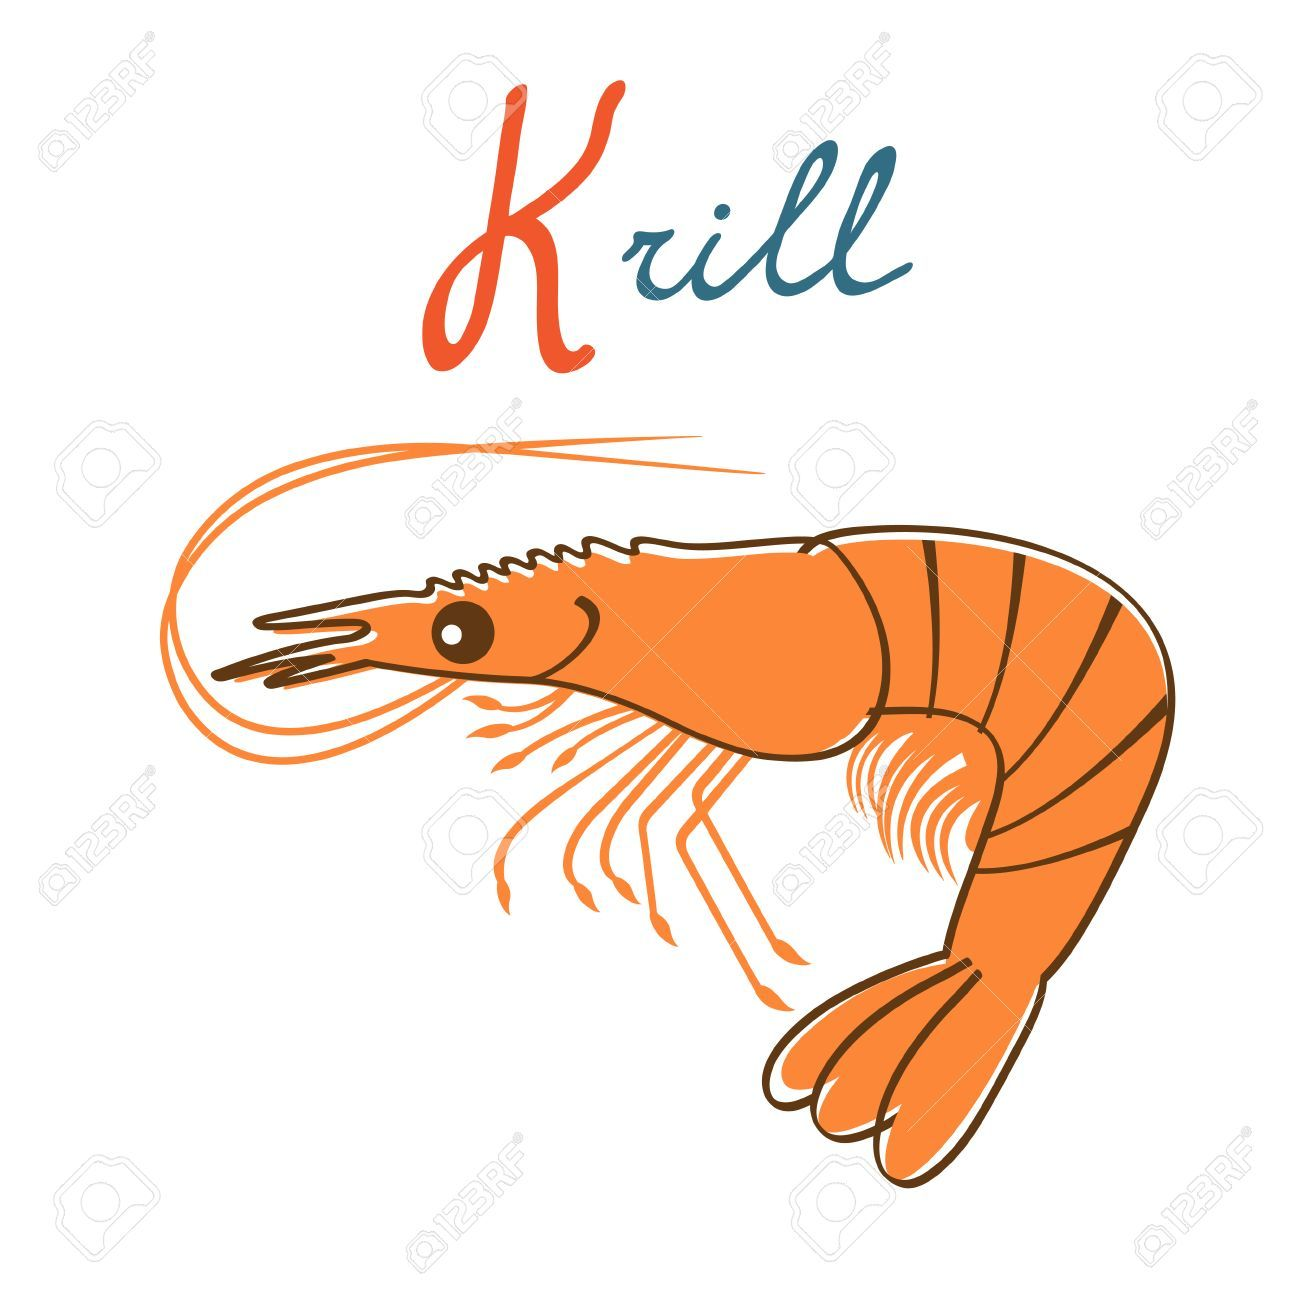 Illustration of K is for Krill » Clipart Portal.